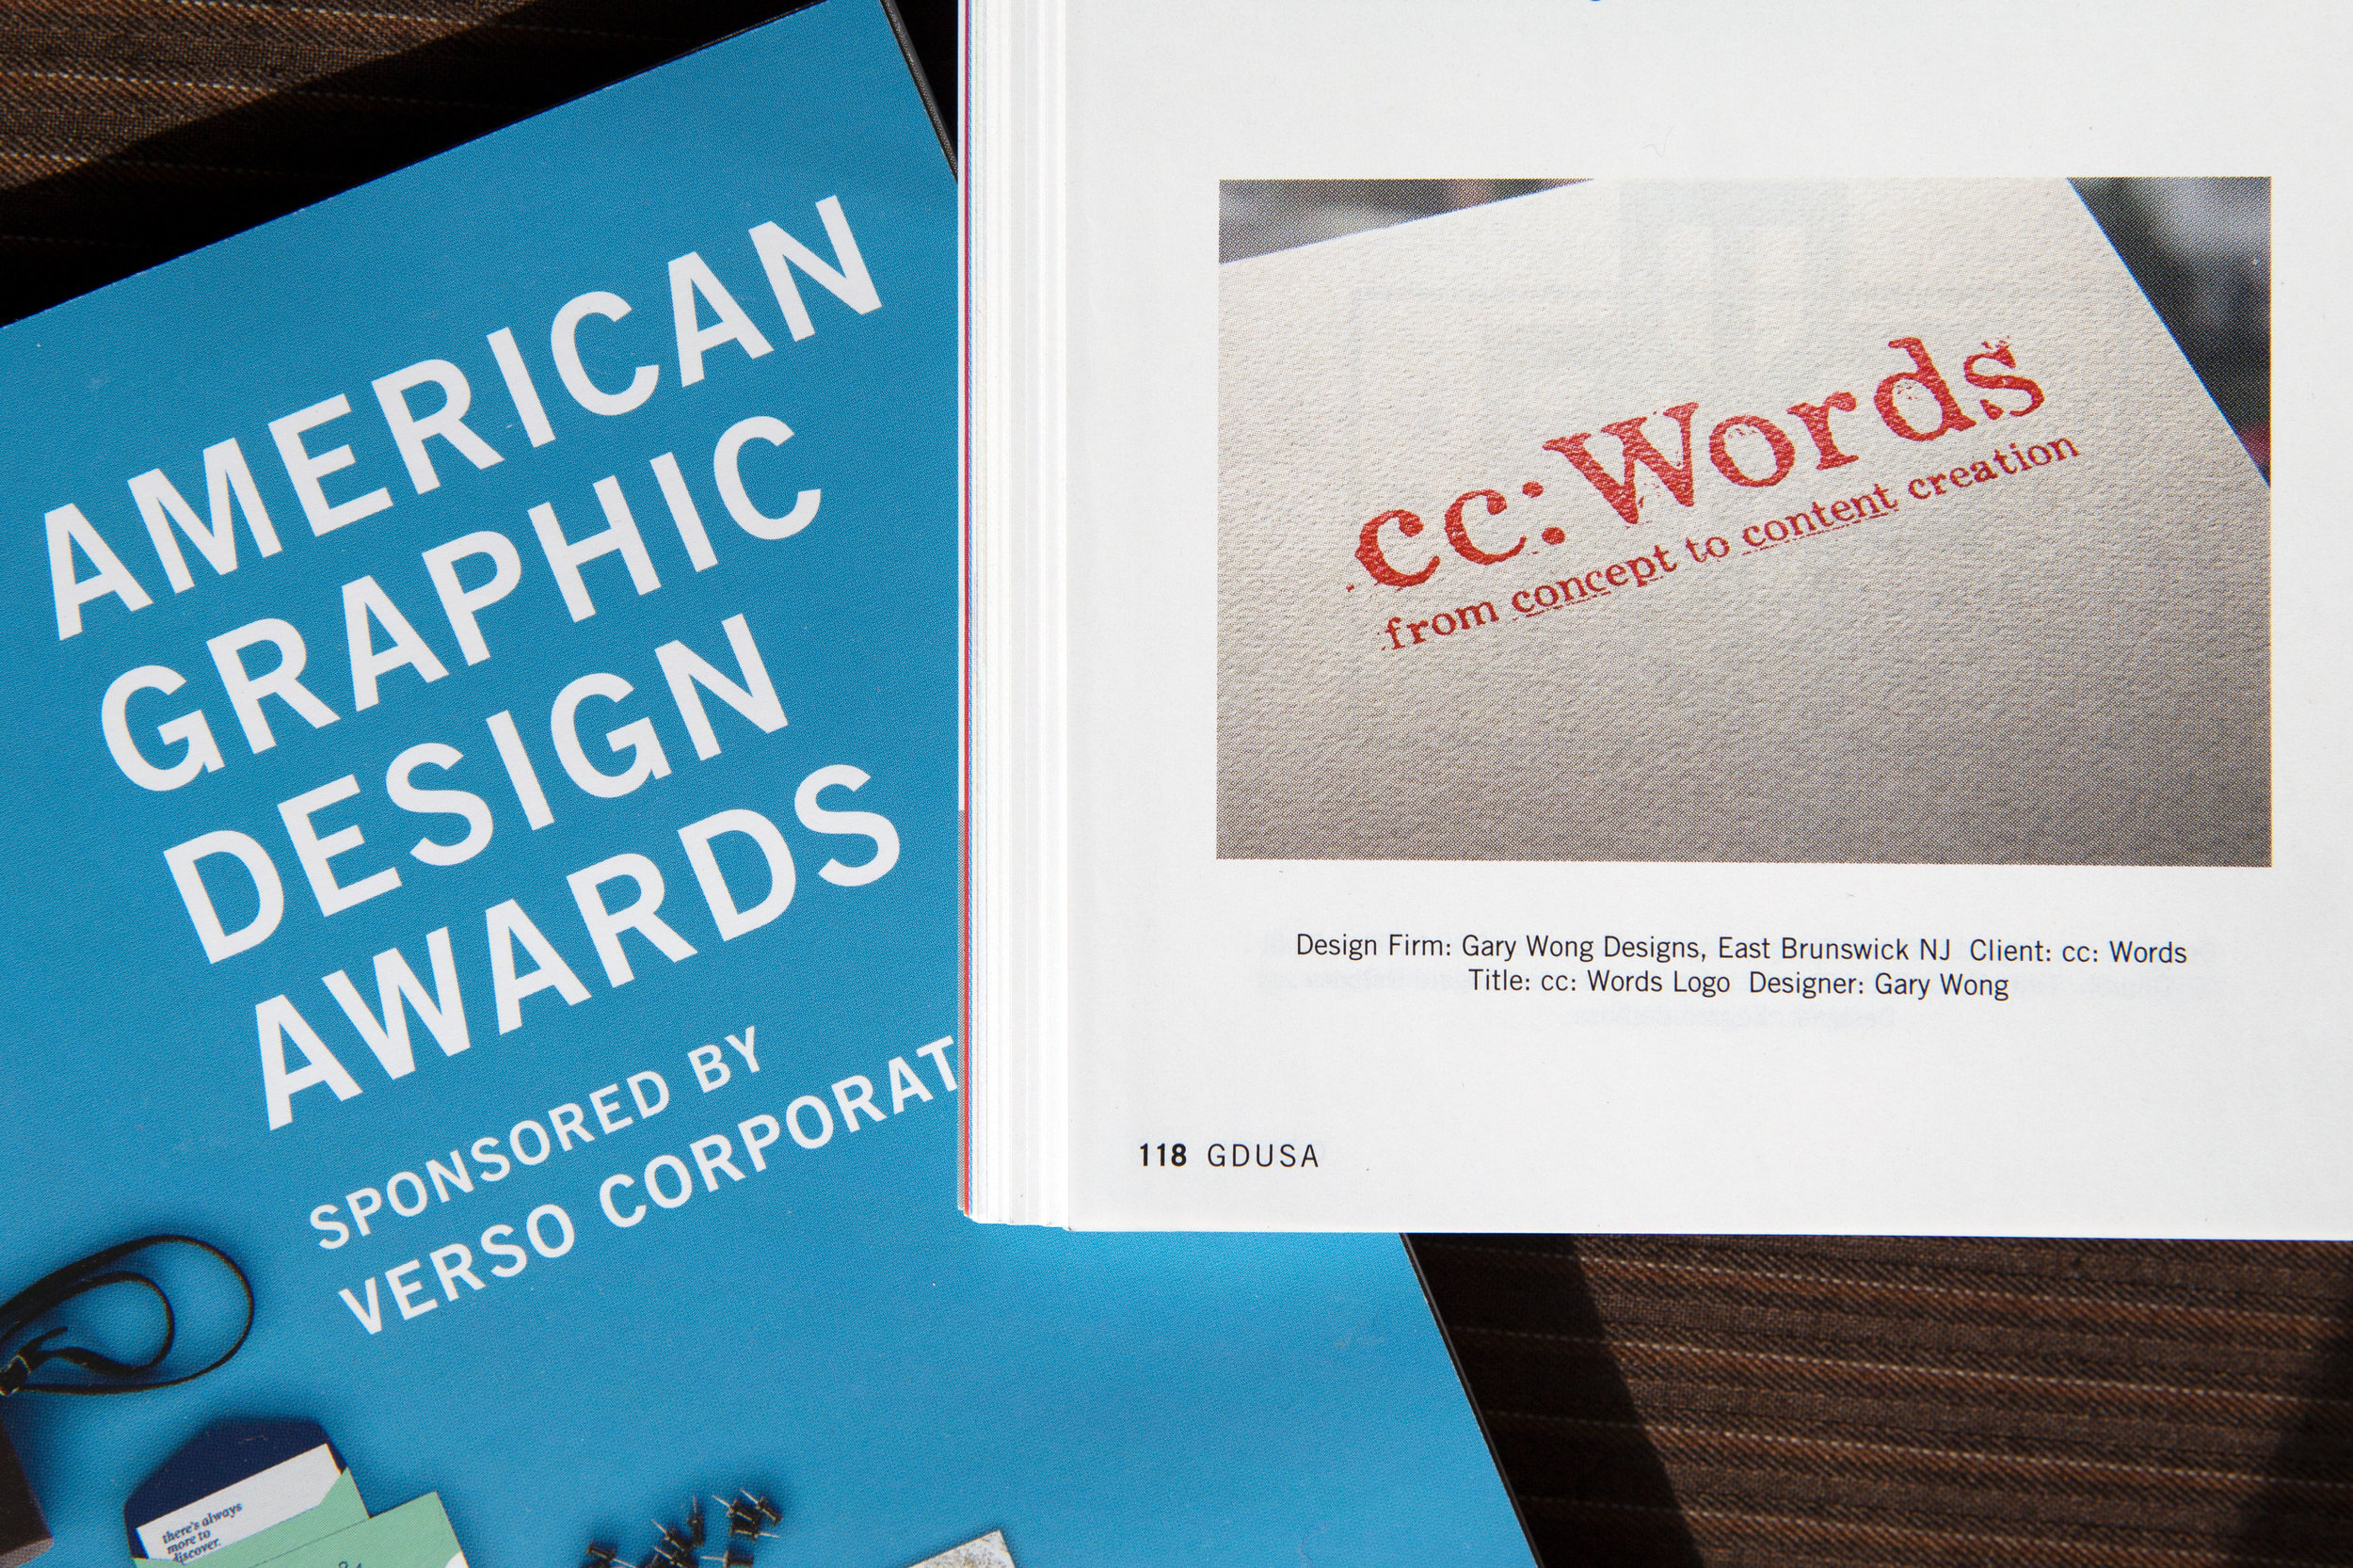 Category: Logos, Trademarks and Symbols  Client: cc: Words